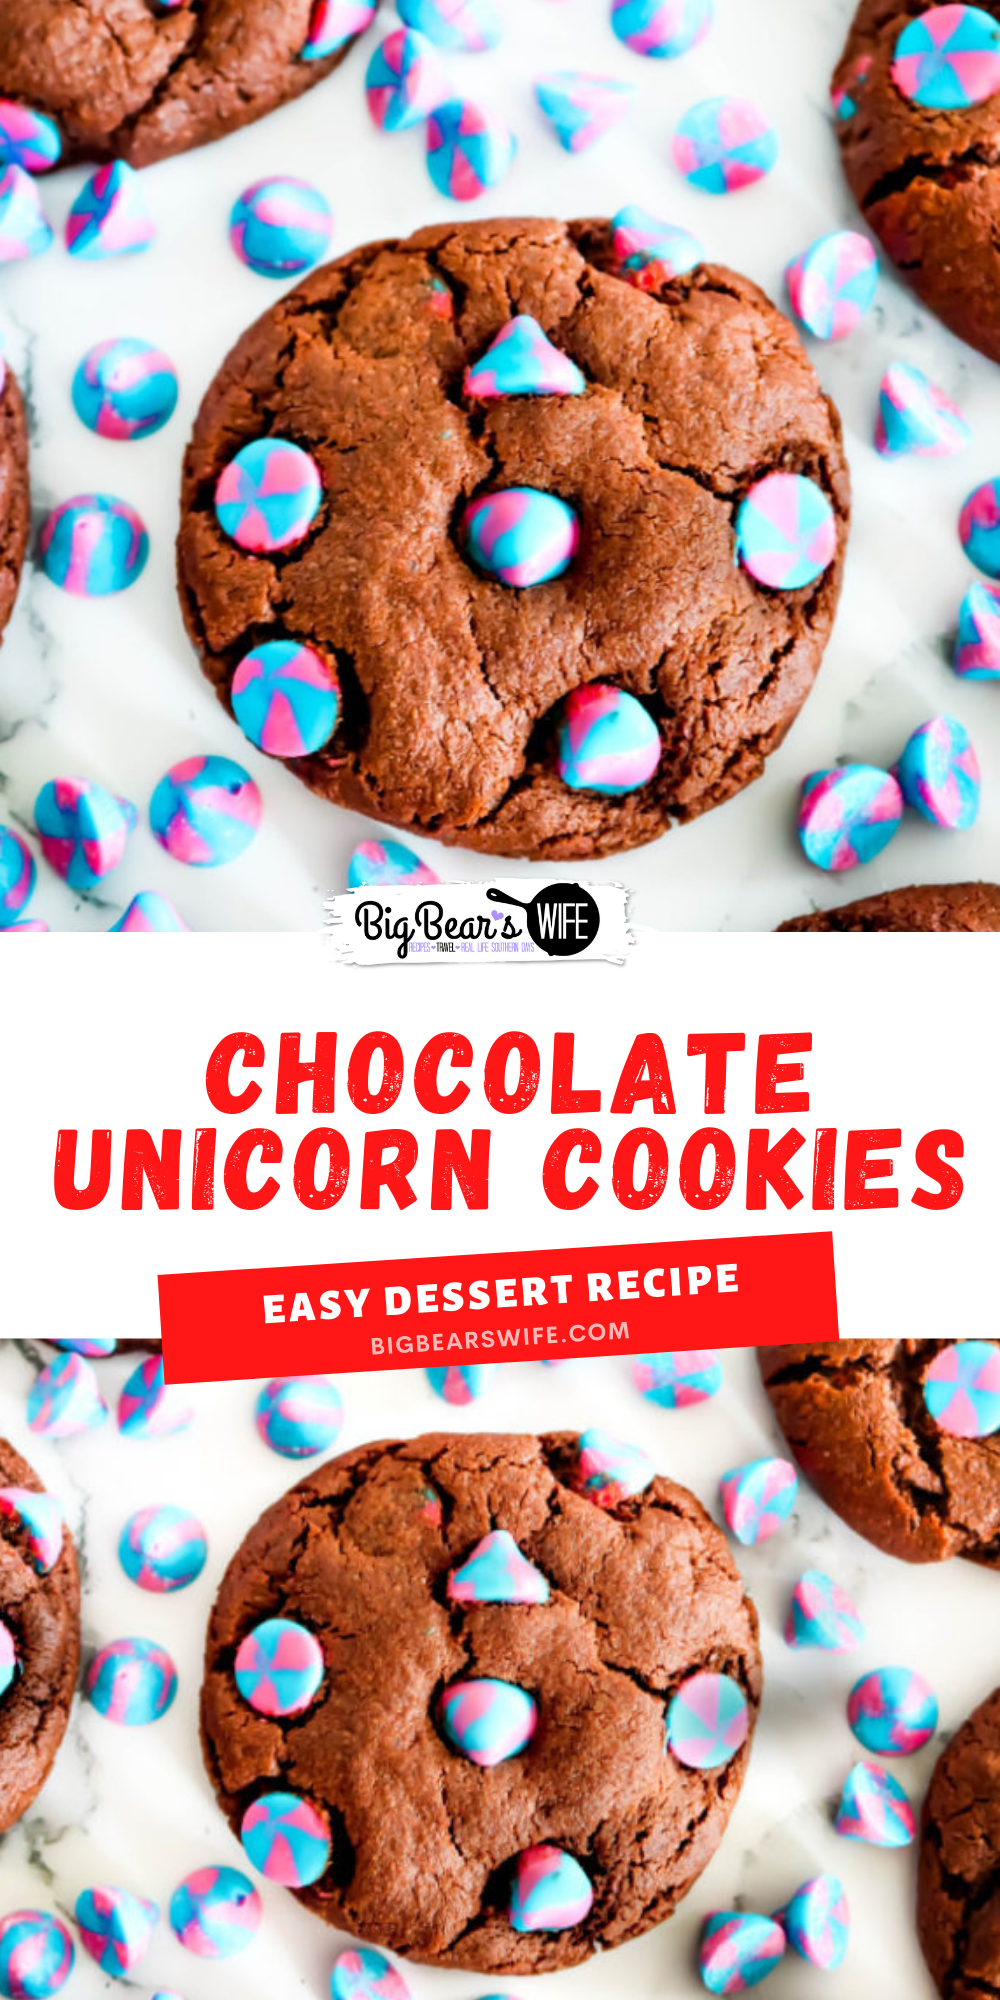 If you have someone in your life that loves Unicorns you need to bake them up a batch of these Chocolate Unicorn Cookies! They're delicious and packed with the prettiest Unicorn Pink & Blue swirled vanilla chips!